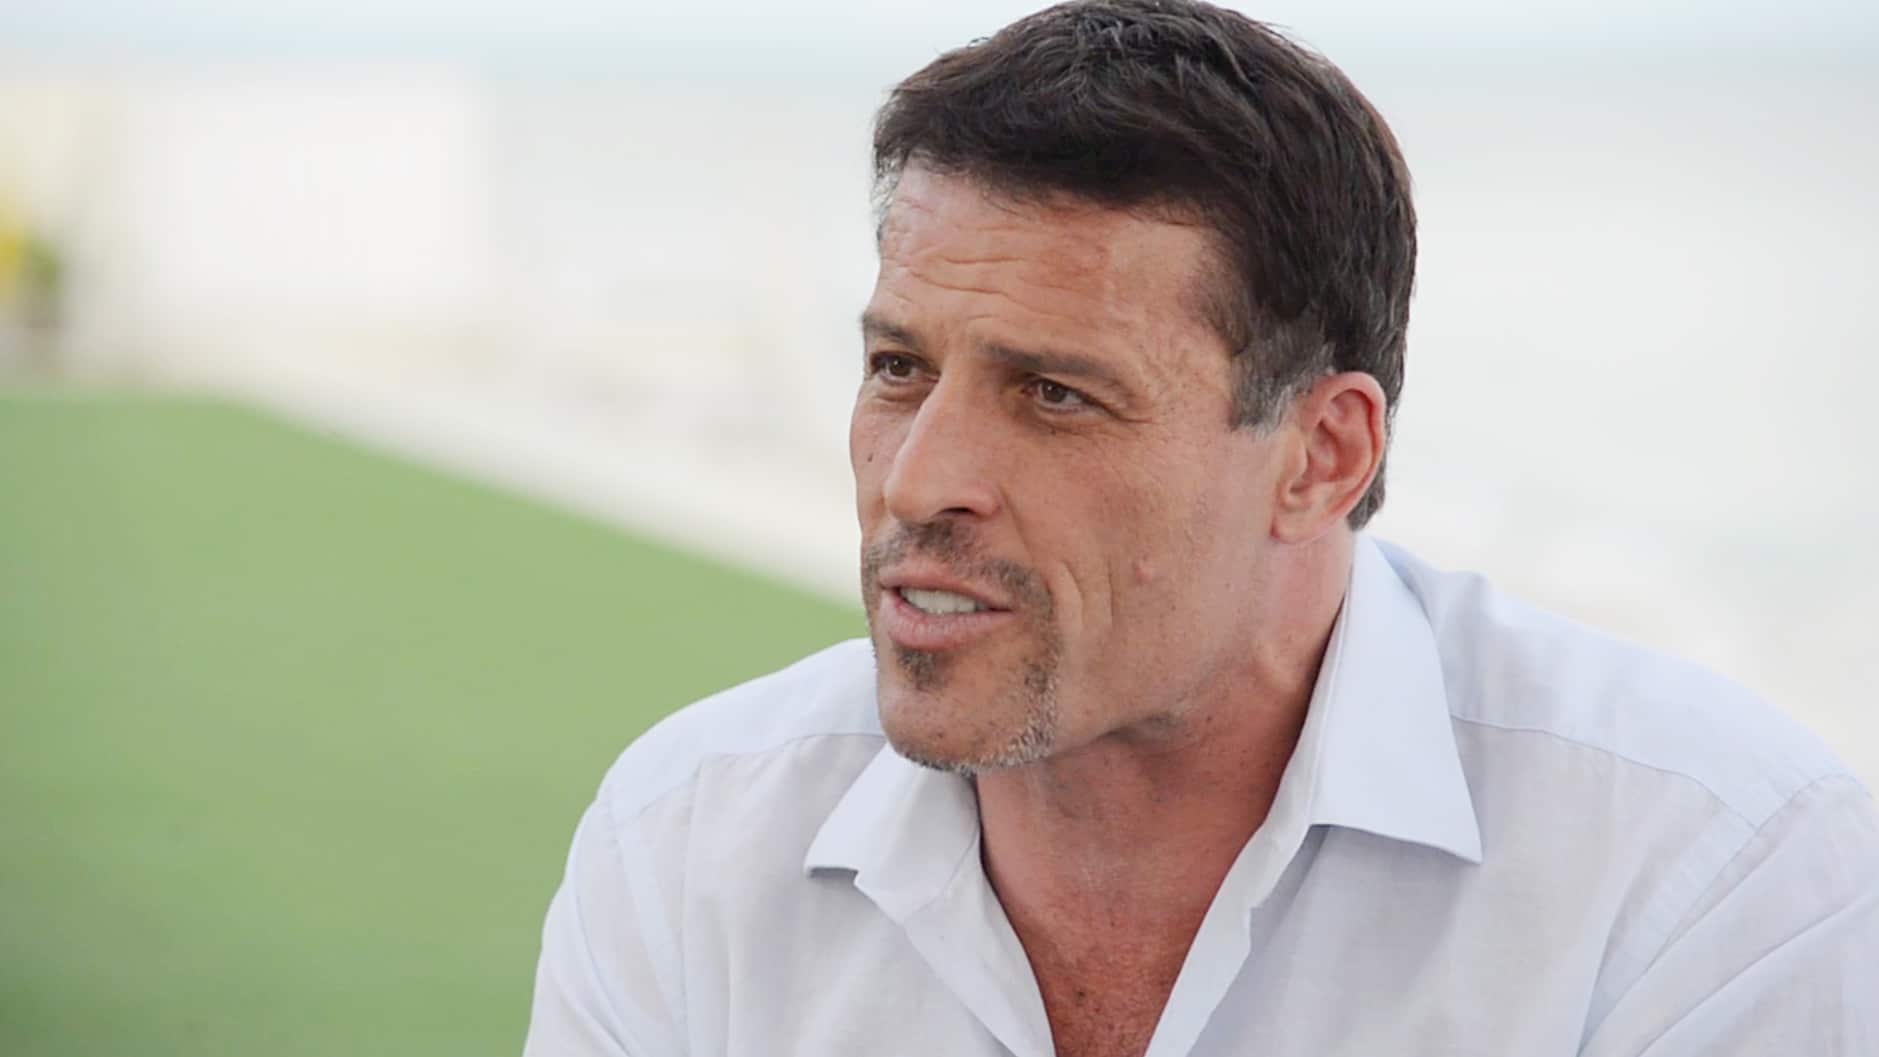 Essential Career Advice from Tony Robbins